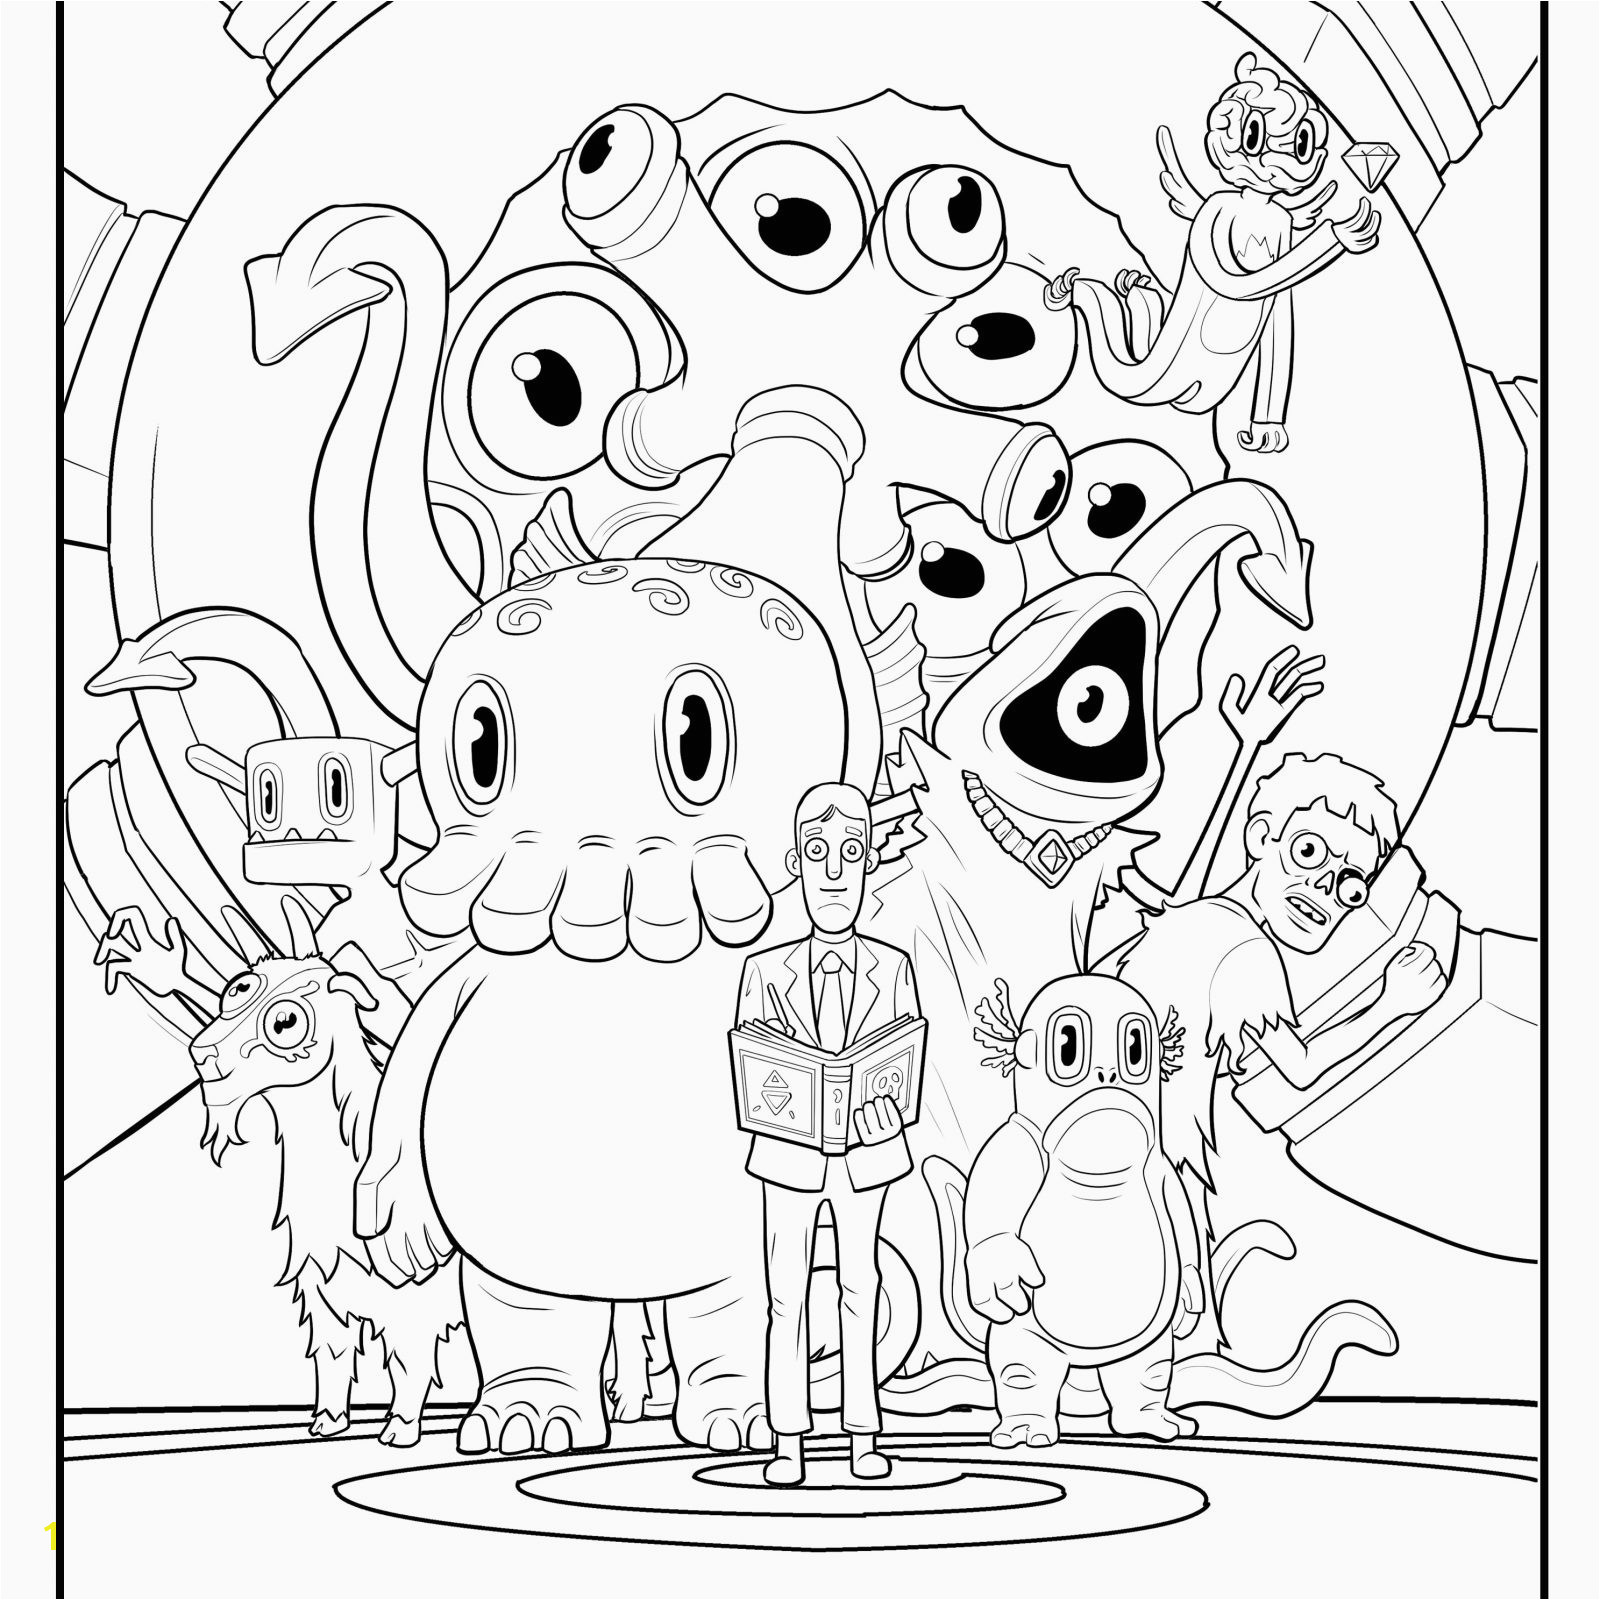 Care Bears Coloring Pages Teddy Bears Coloring Pages Care Bears Coloring Pages Care Bears